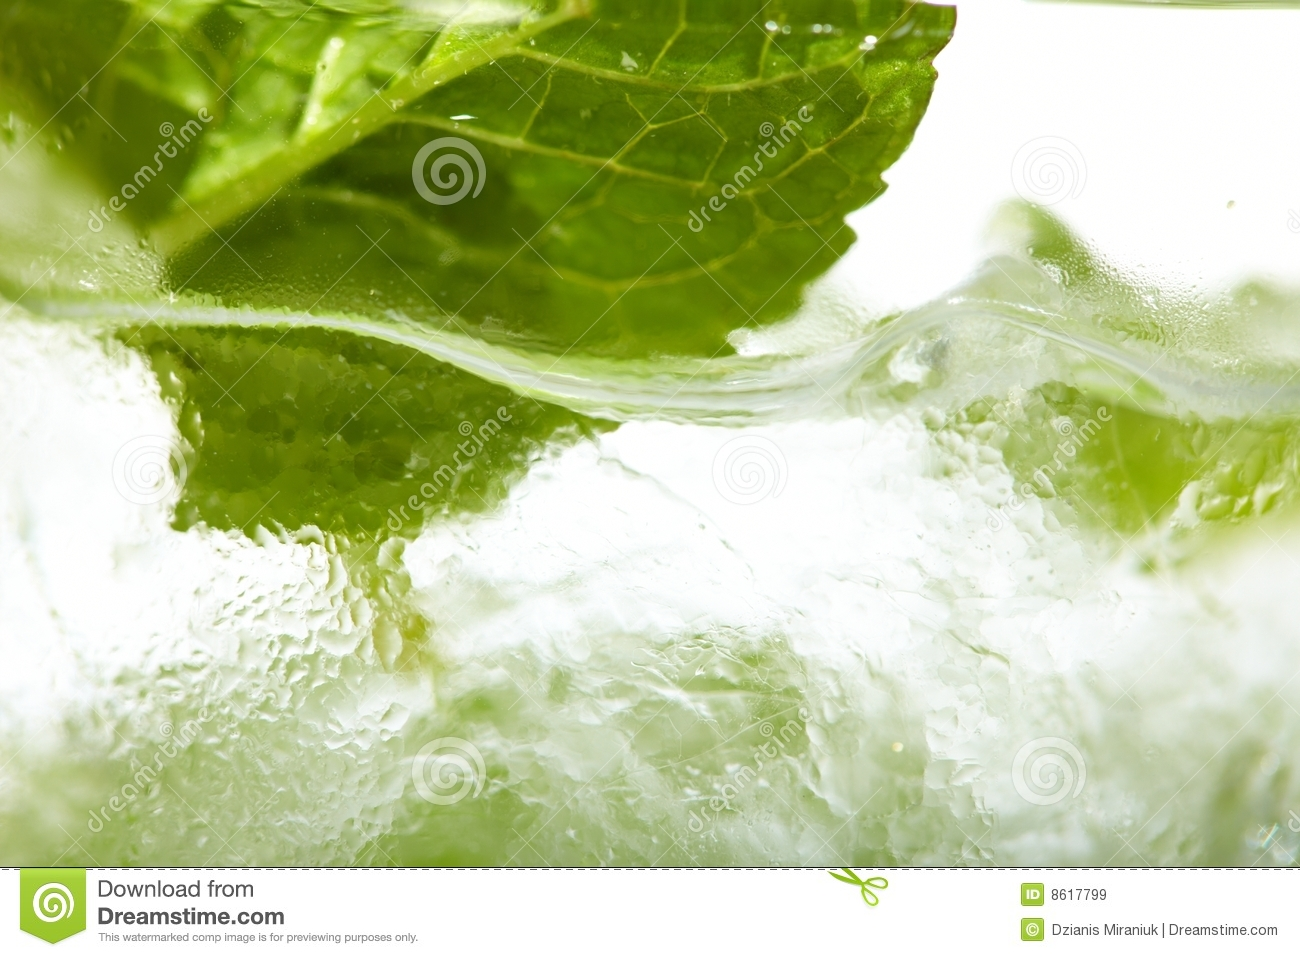 Mint Ice Vodka Royalty Free Stock Images - Image: 8617799